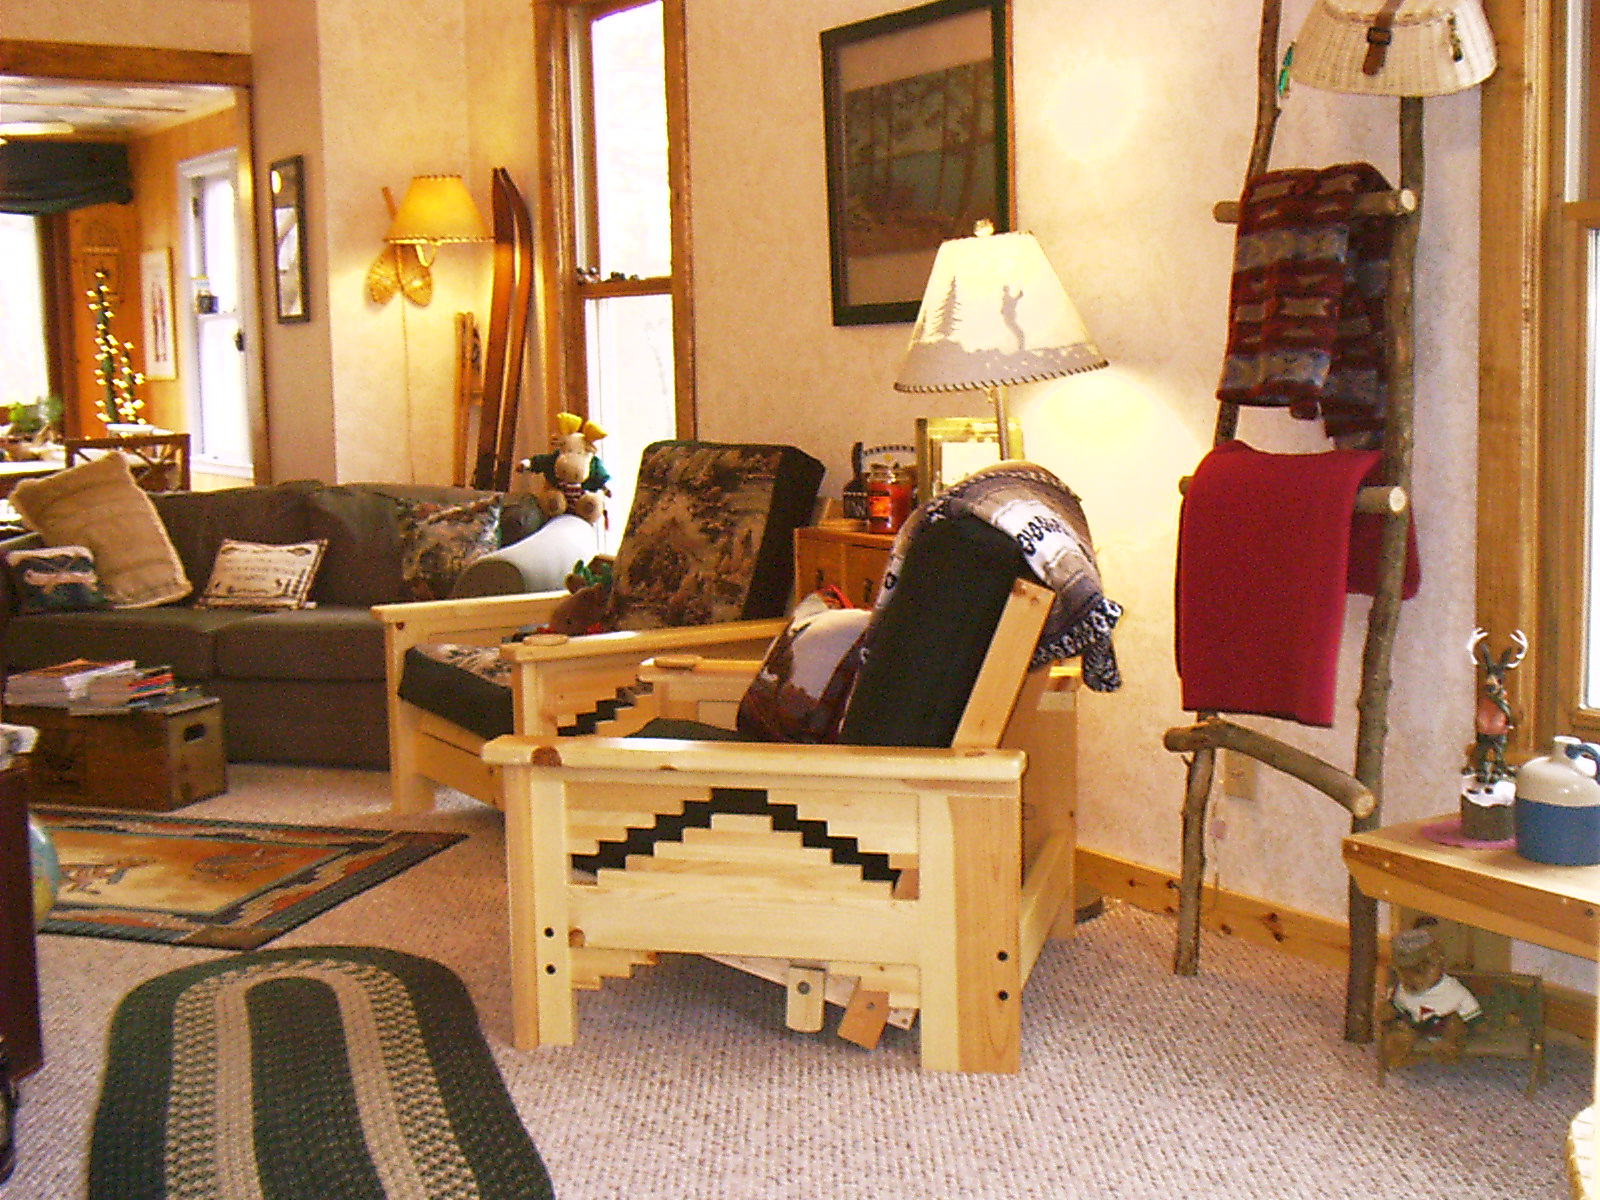 A living room filled with furniture and a fire place at Kinni Creek Lodge and Outfitters.